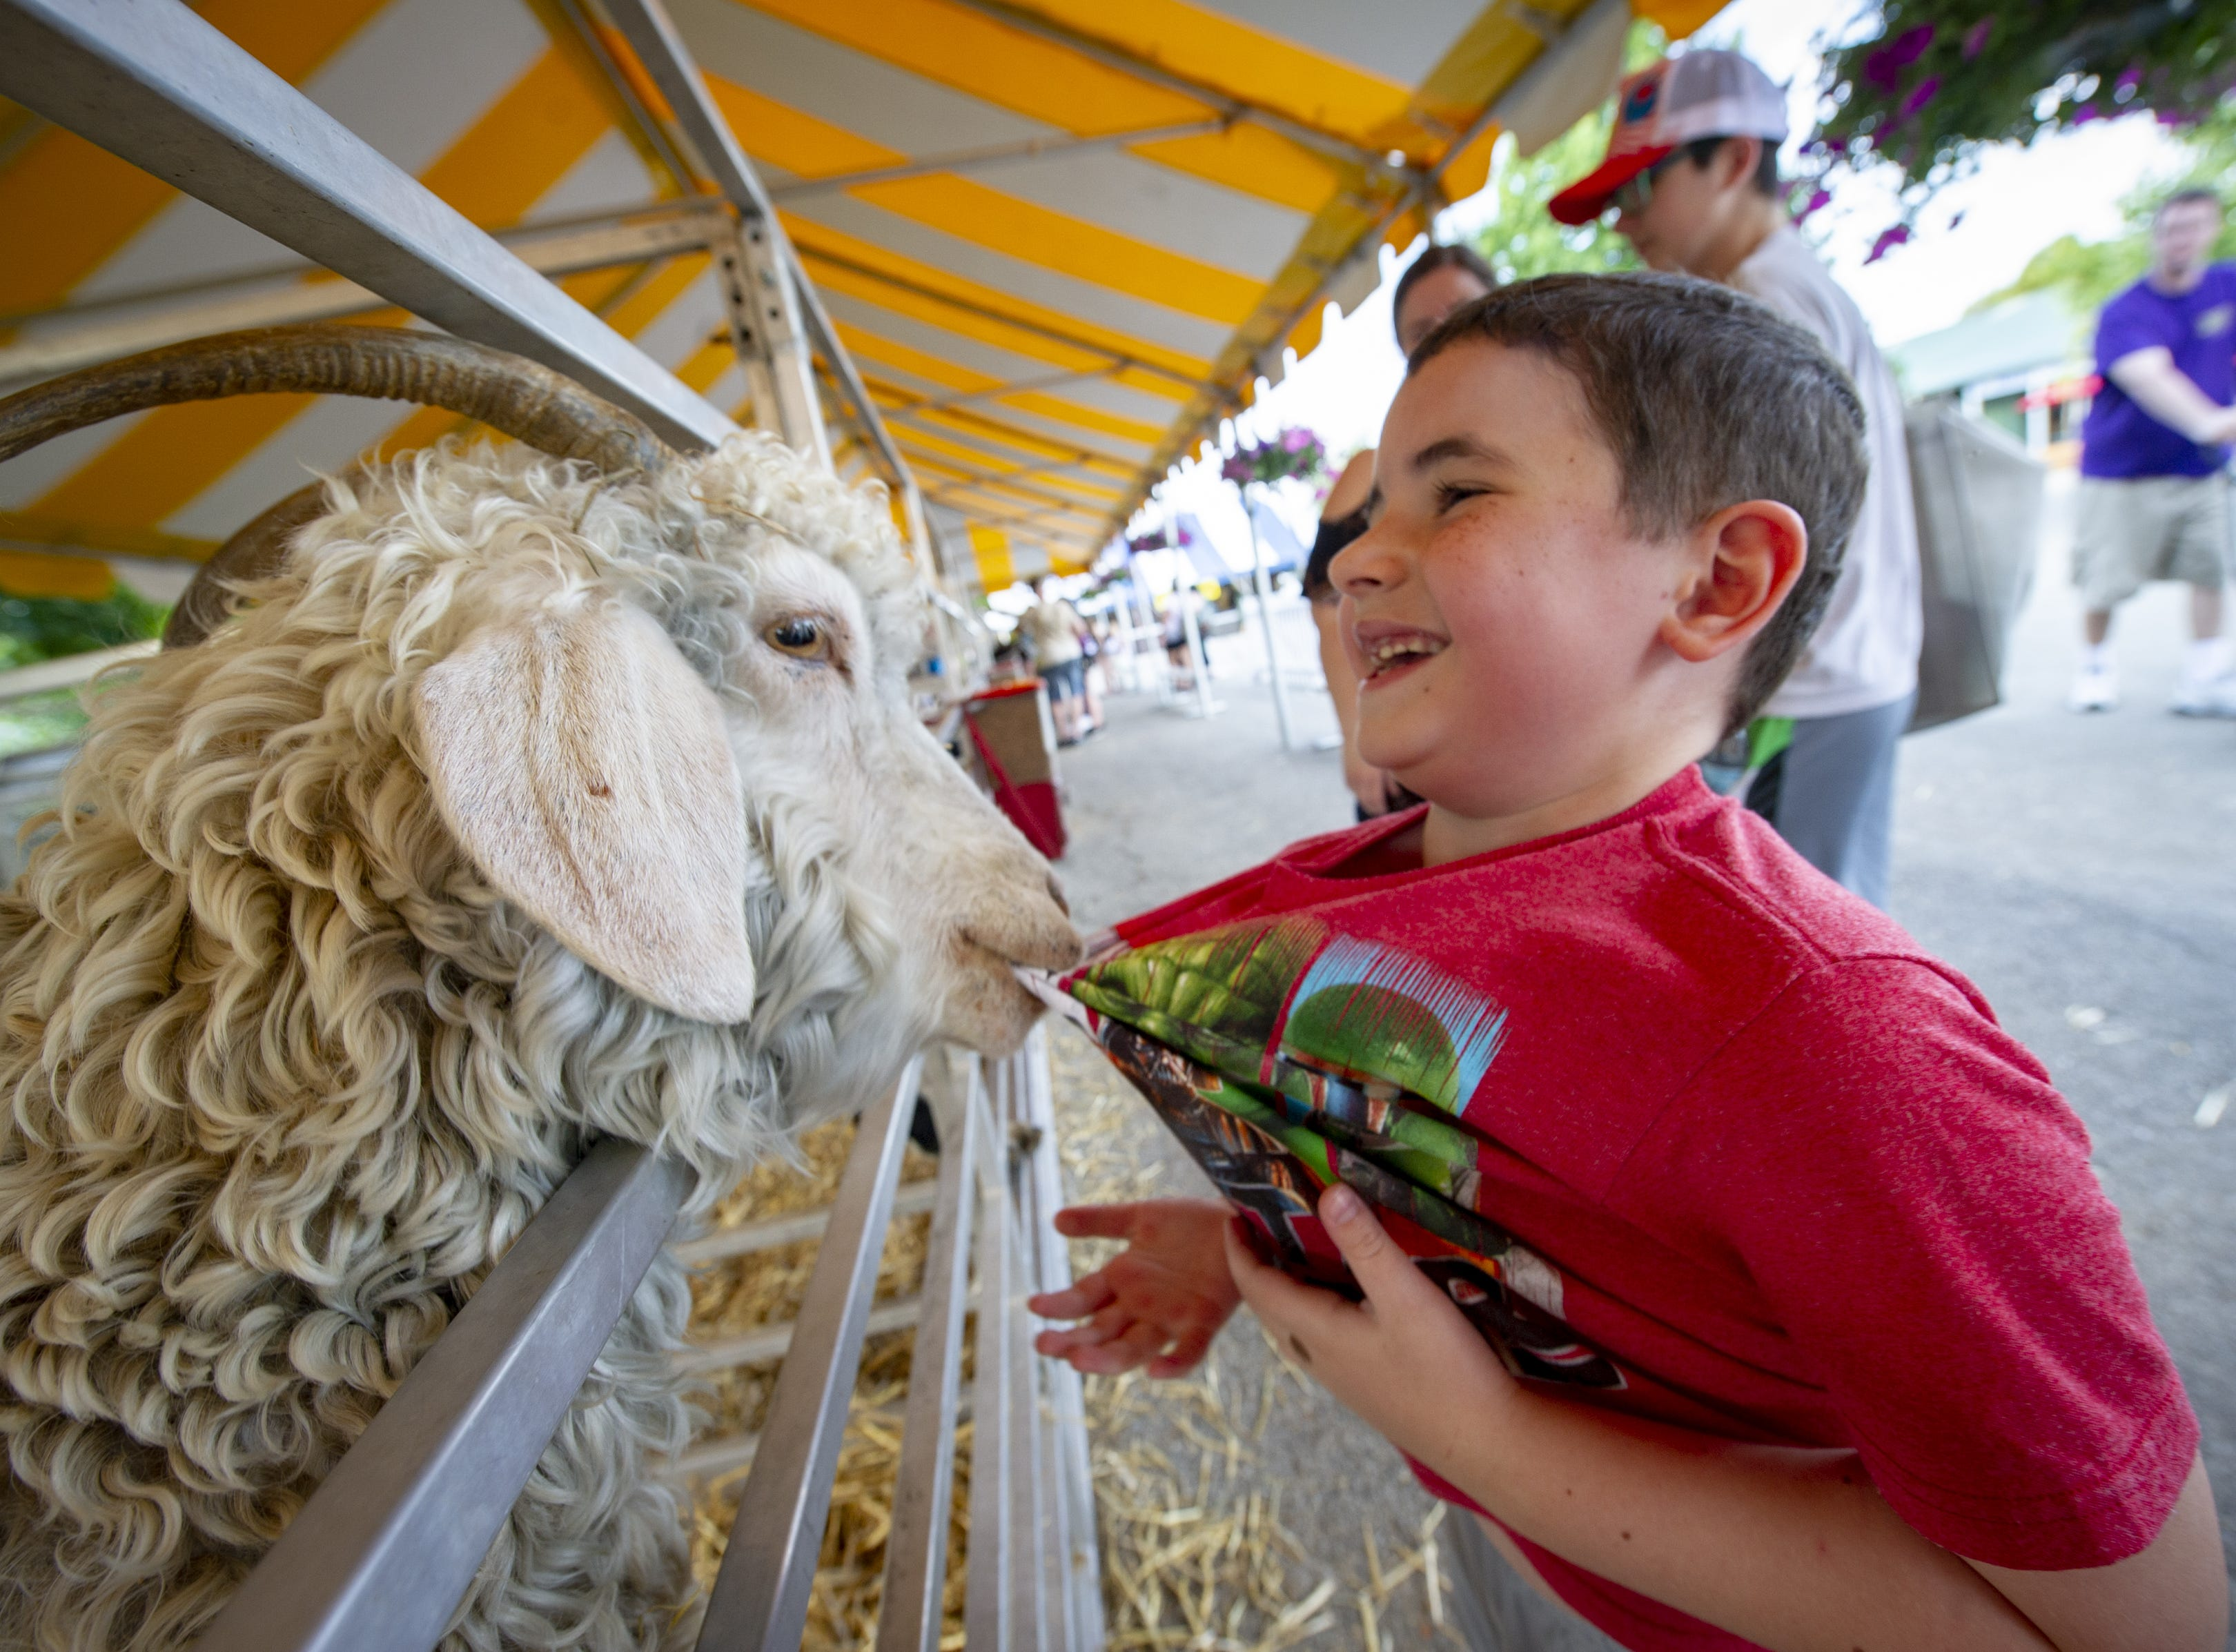 An Angora Goat grabs hold of the t-shirt of Levi Young while he visited with some of the livestock at the Indiana State Fair, Friday, Aug. 10, 2018.